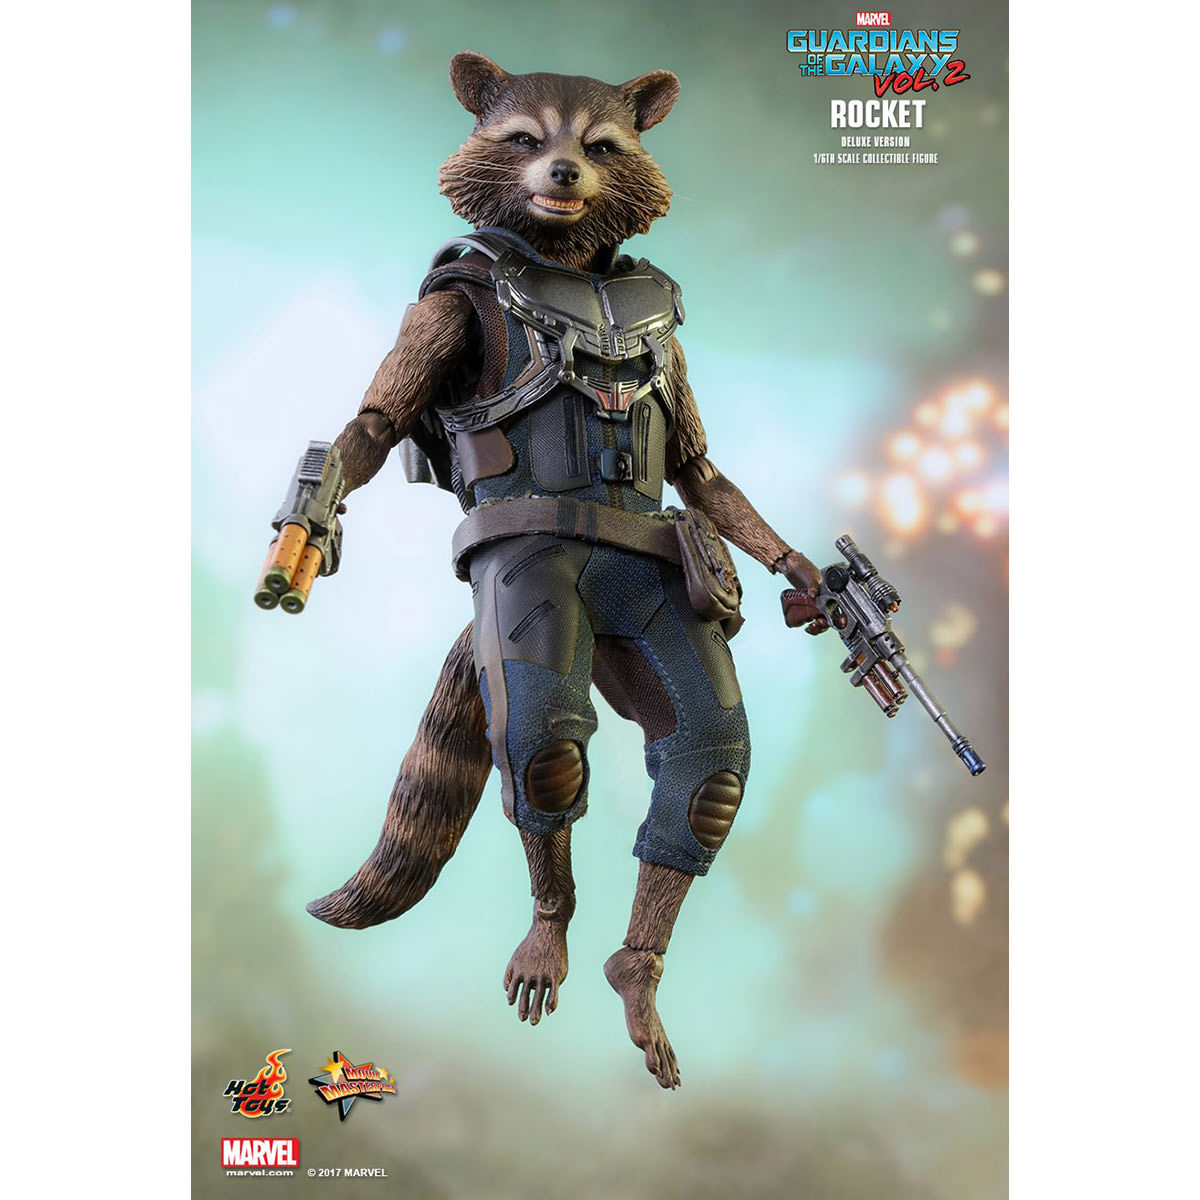 Hot Toys Marvel Guardians Of The Galaxy Vol 2 Rocket Deluxe Raccoon Super Vinyl Figure Version 1 6th Scale Collectible